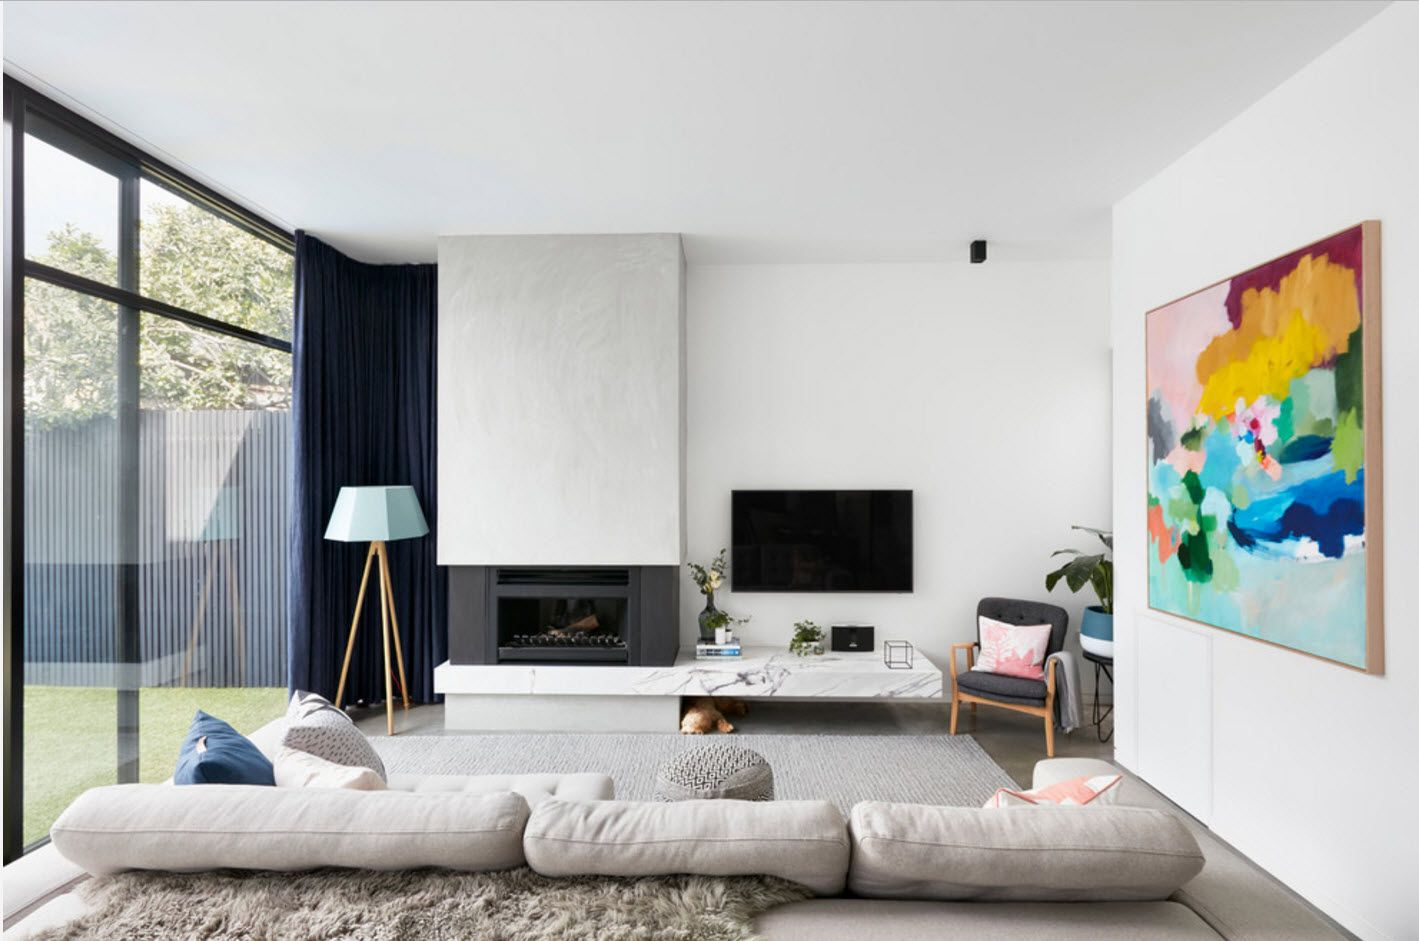 White hi-tech design of the contrasting living room